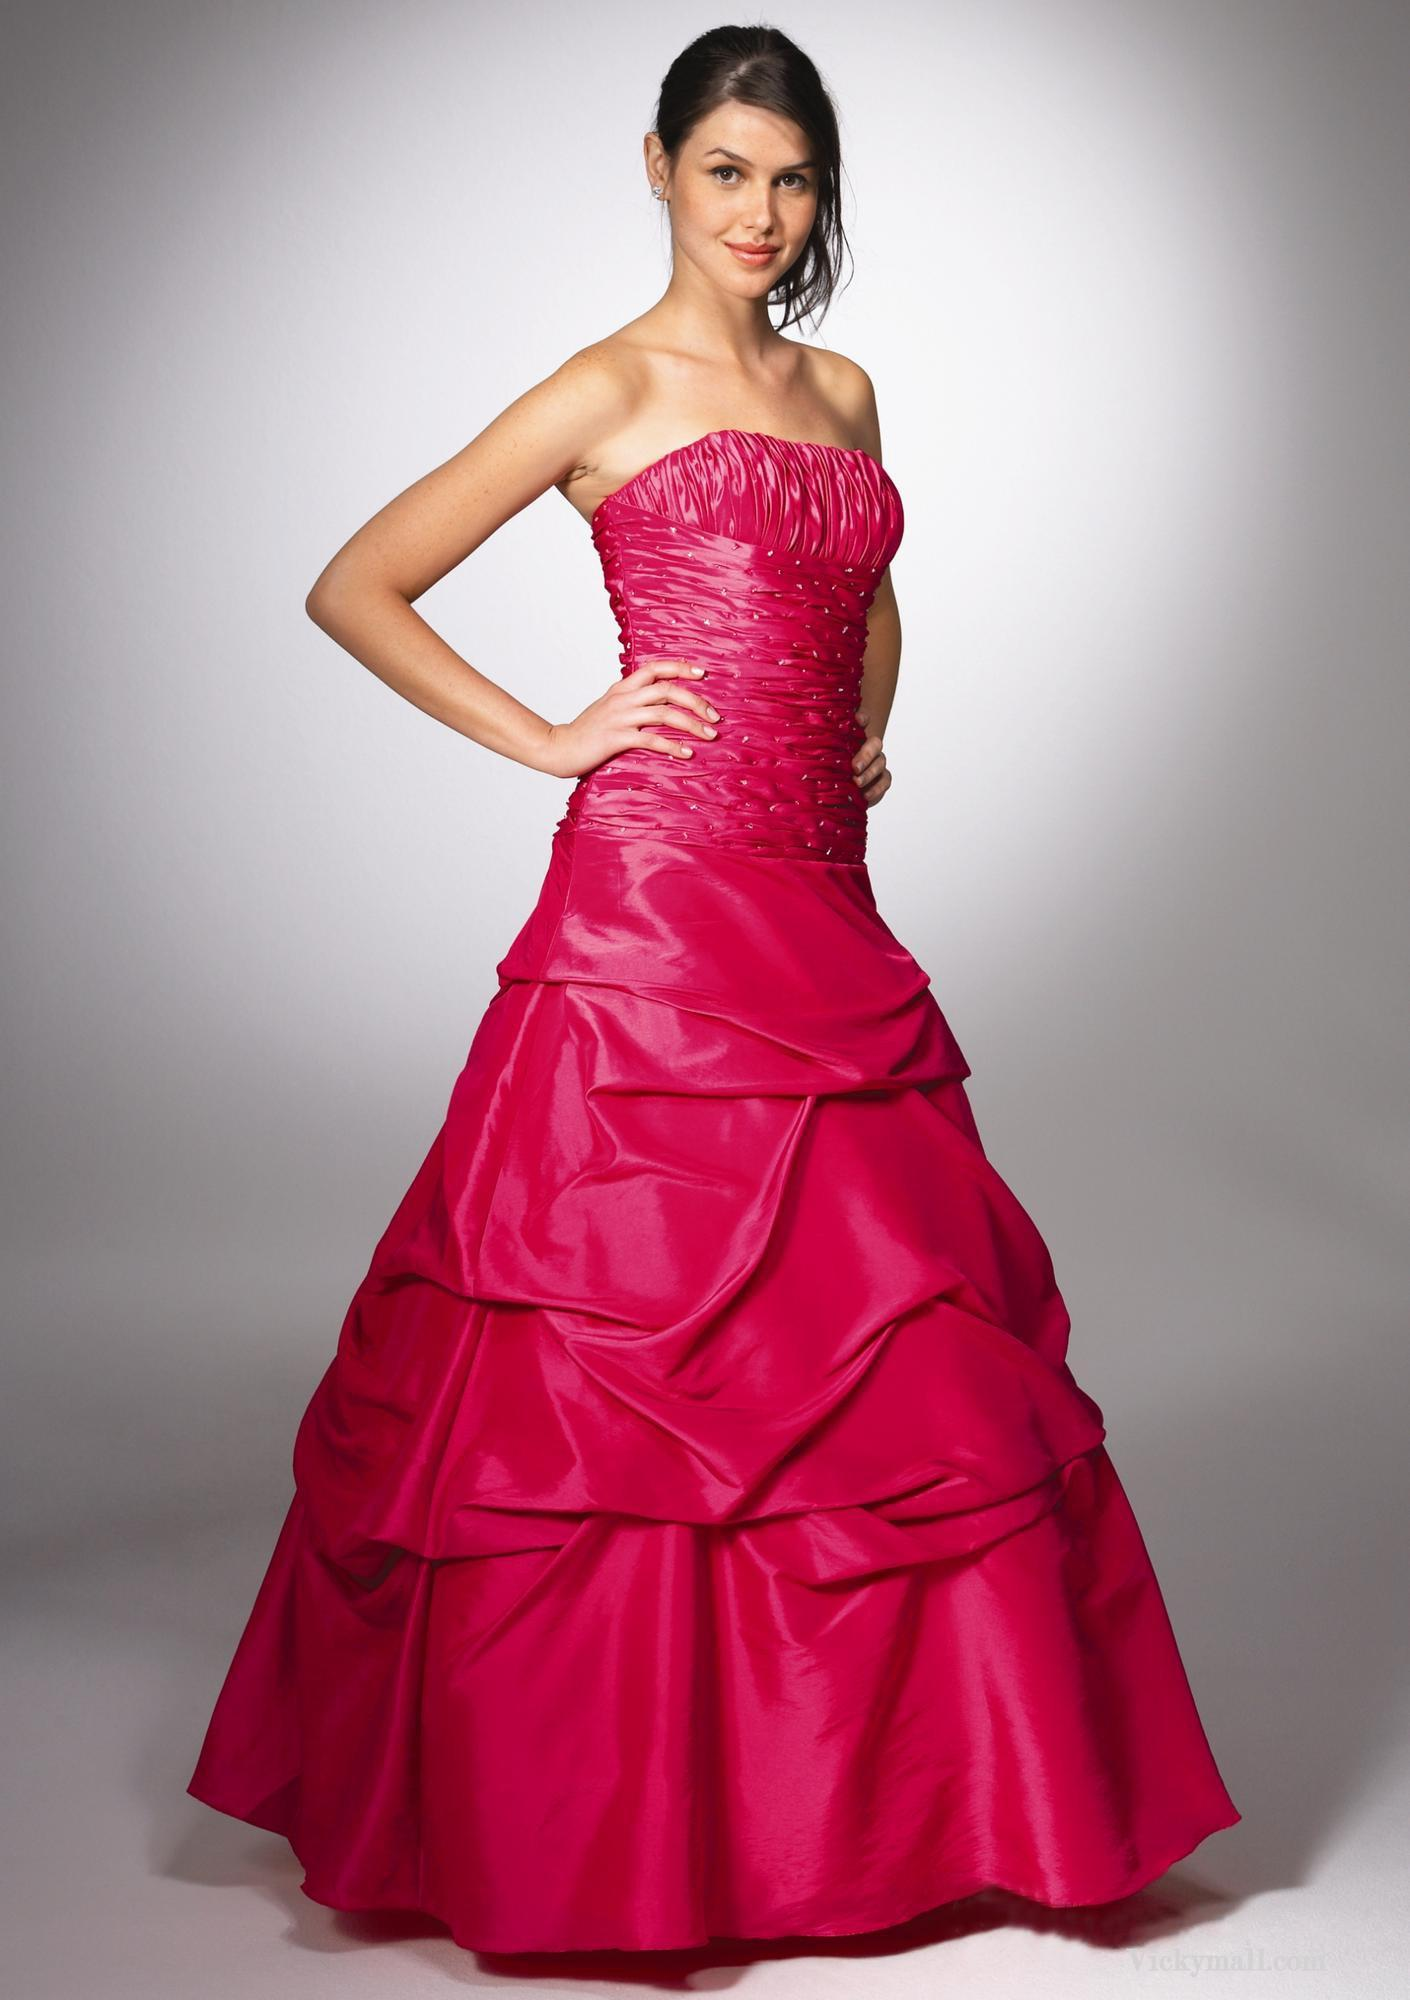 50219-beautiful-pink-quinceanera-dresses-release-the-girl-s-most